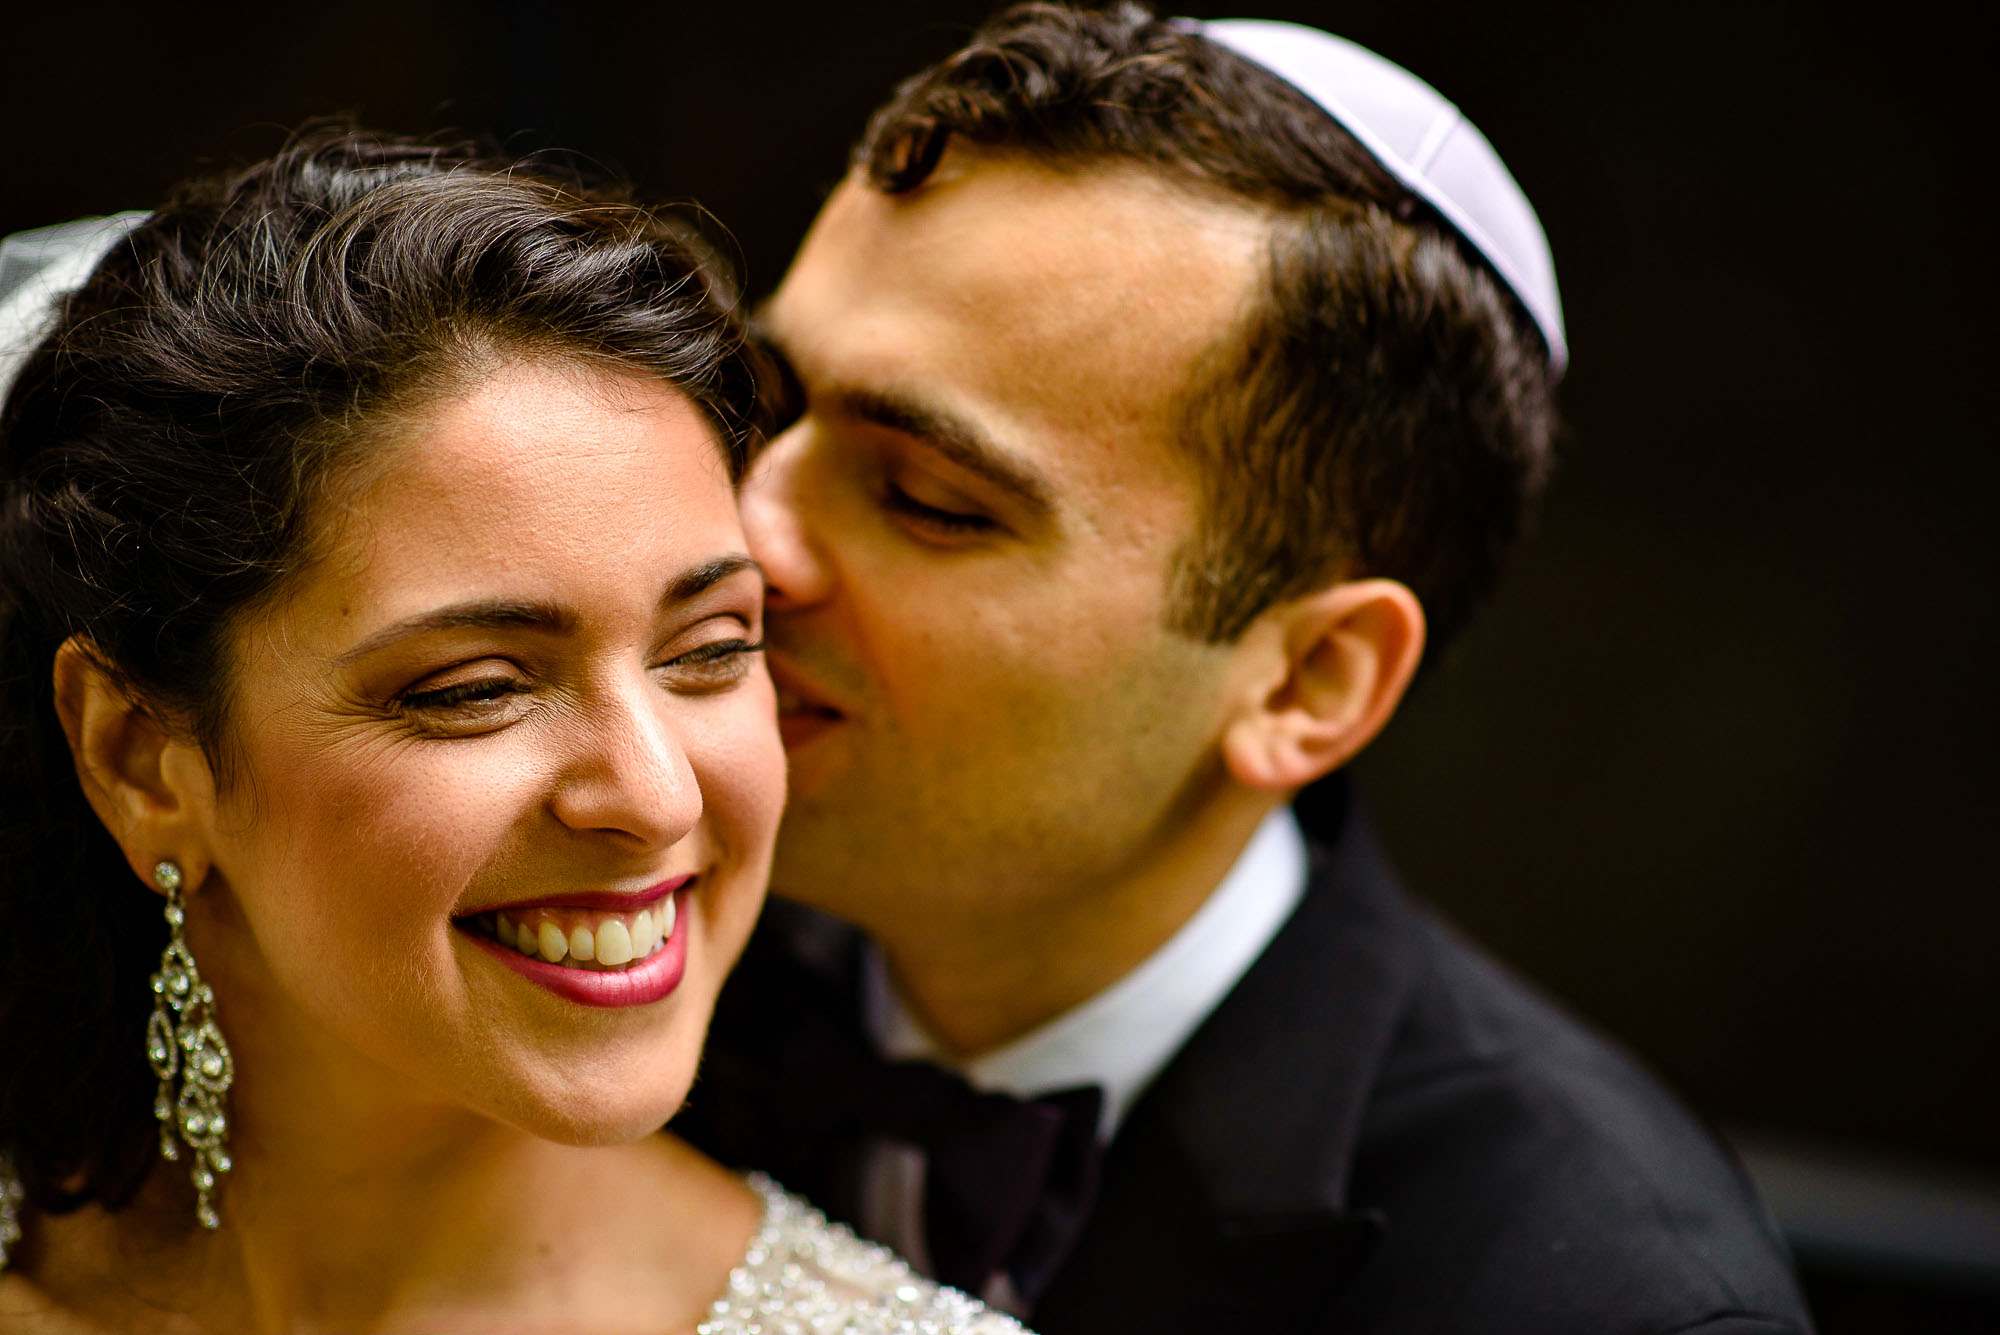 The Sephardic Temple wedding portrait